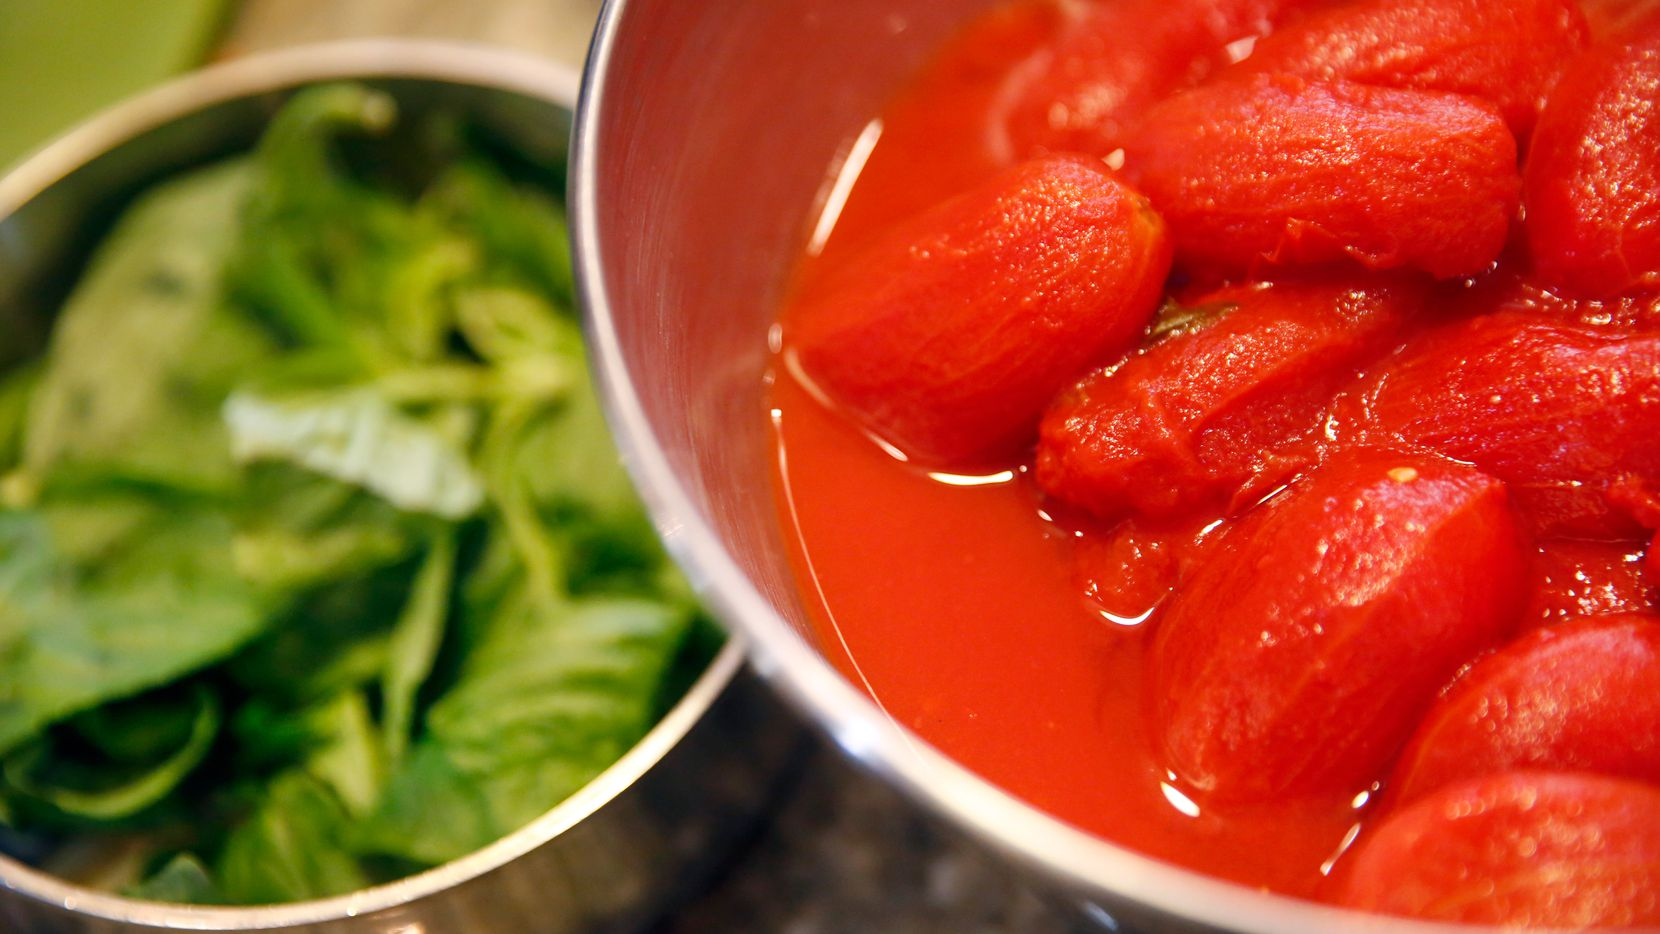 Julian Barsotti highly recommends Alta Cucina brand canned tomatoes for his tomato sauce.